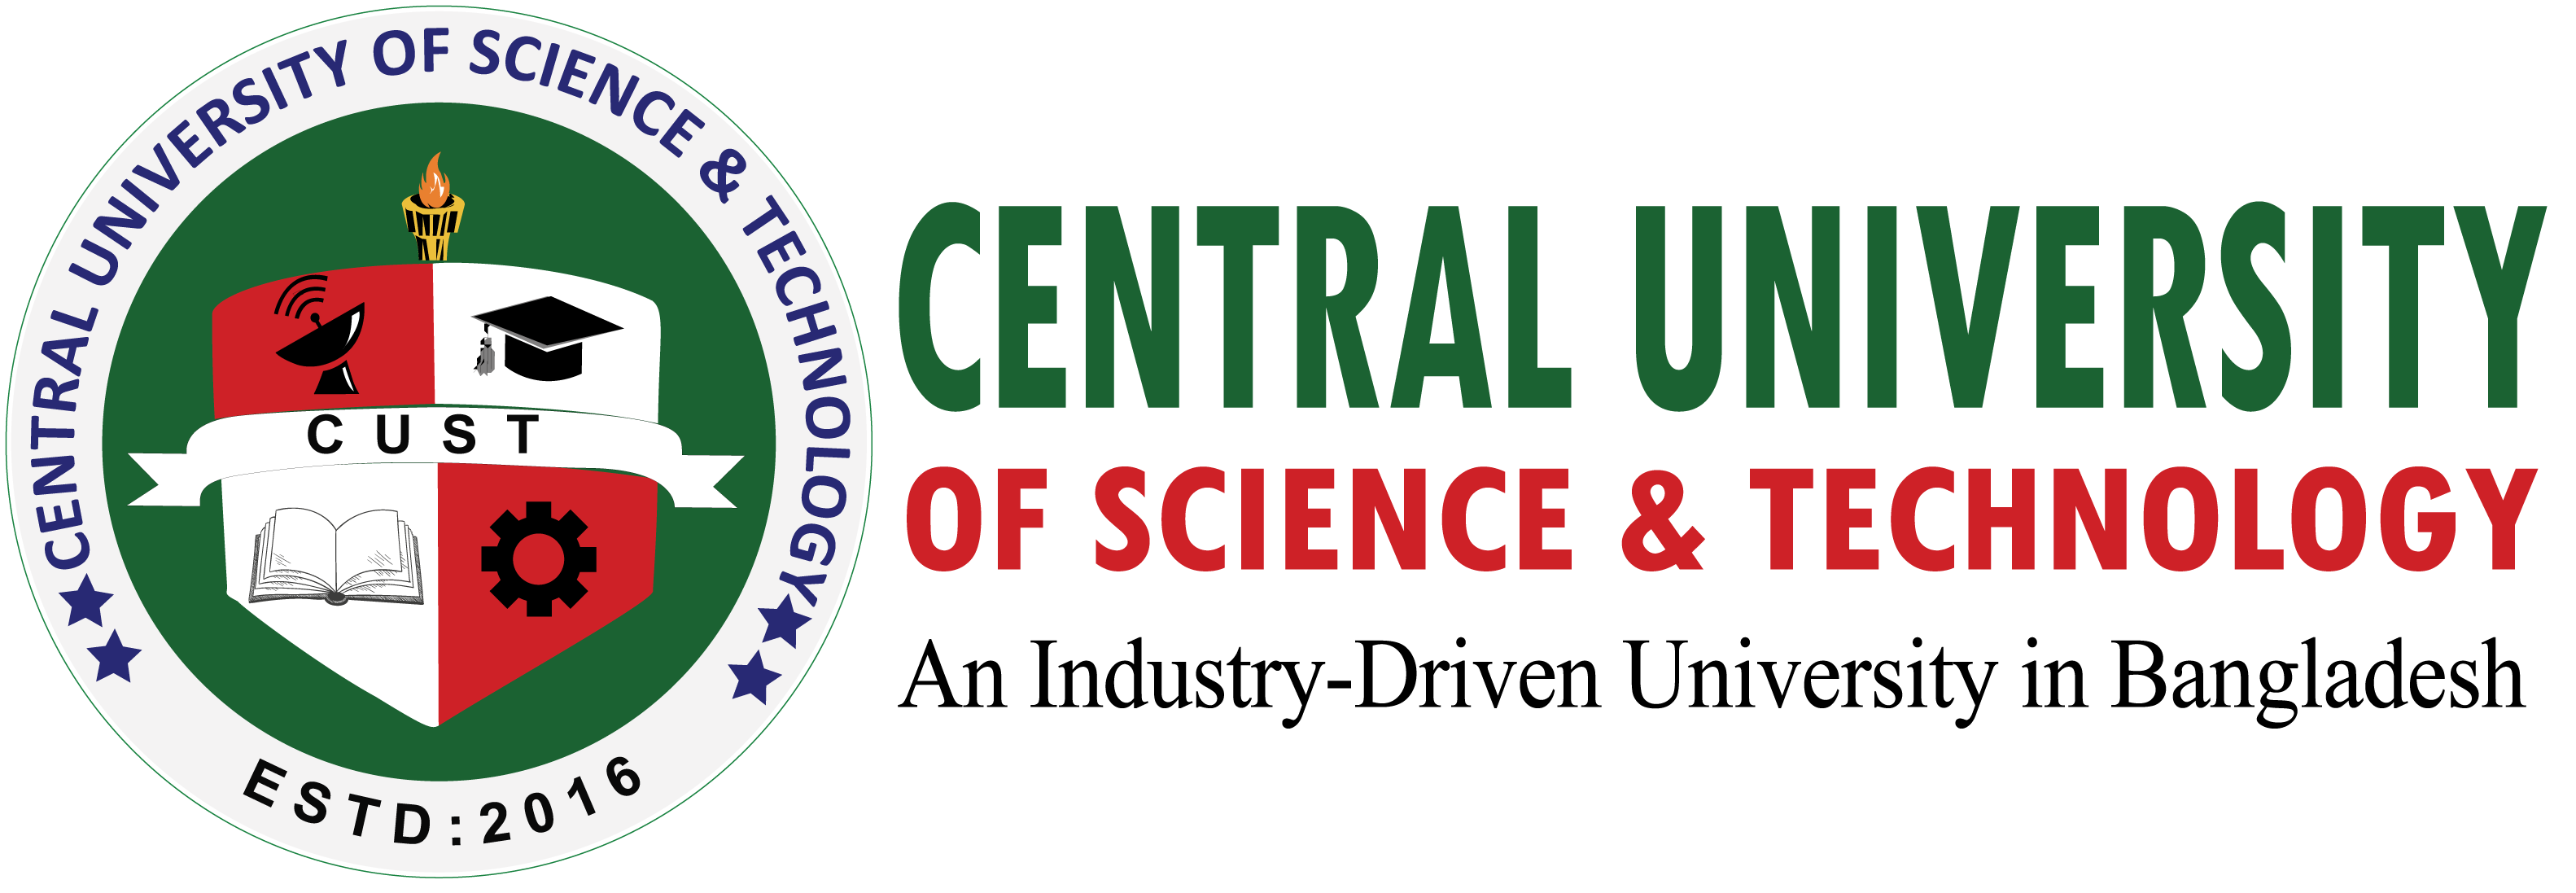 Class Schedule for B.Sc in CSE, Batch 3 - Bijoy (Fall) 2019 - Central University of Science & Technology